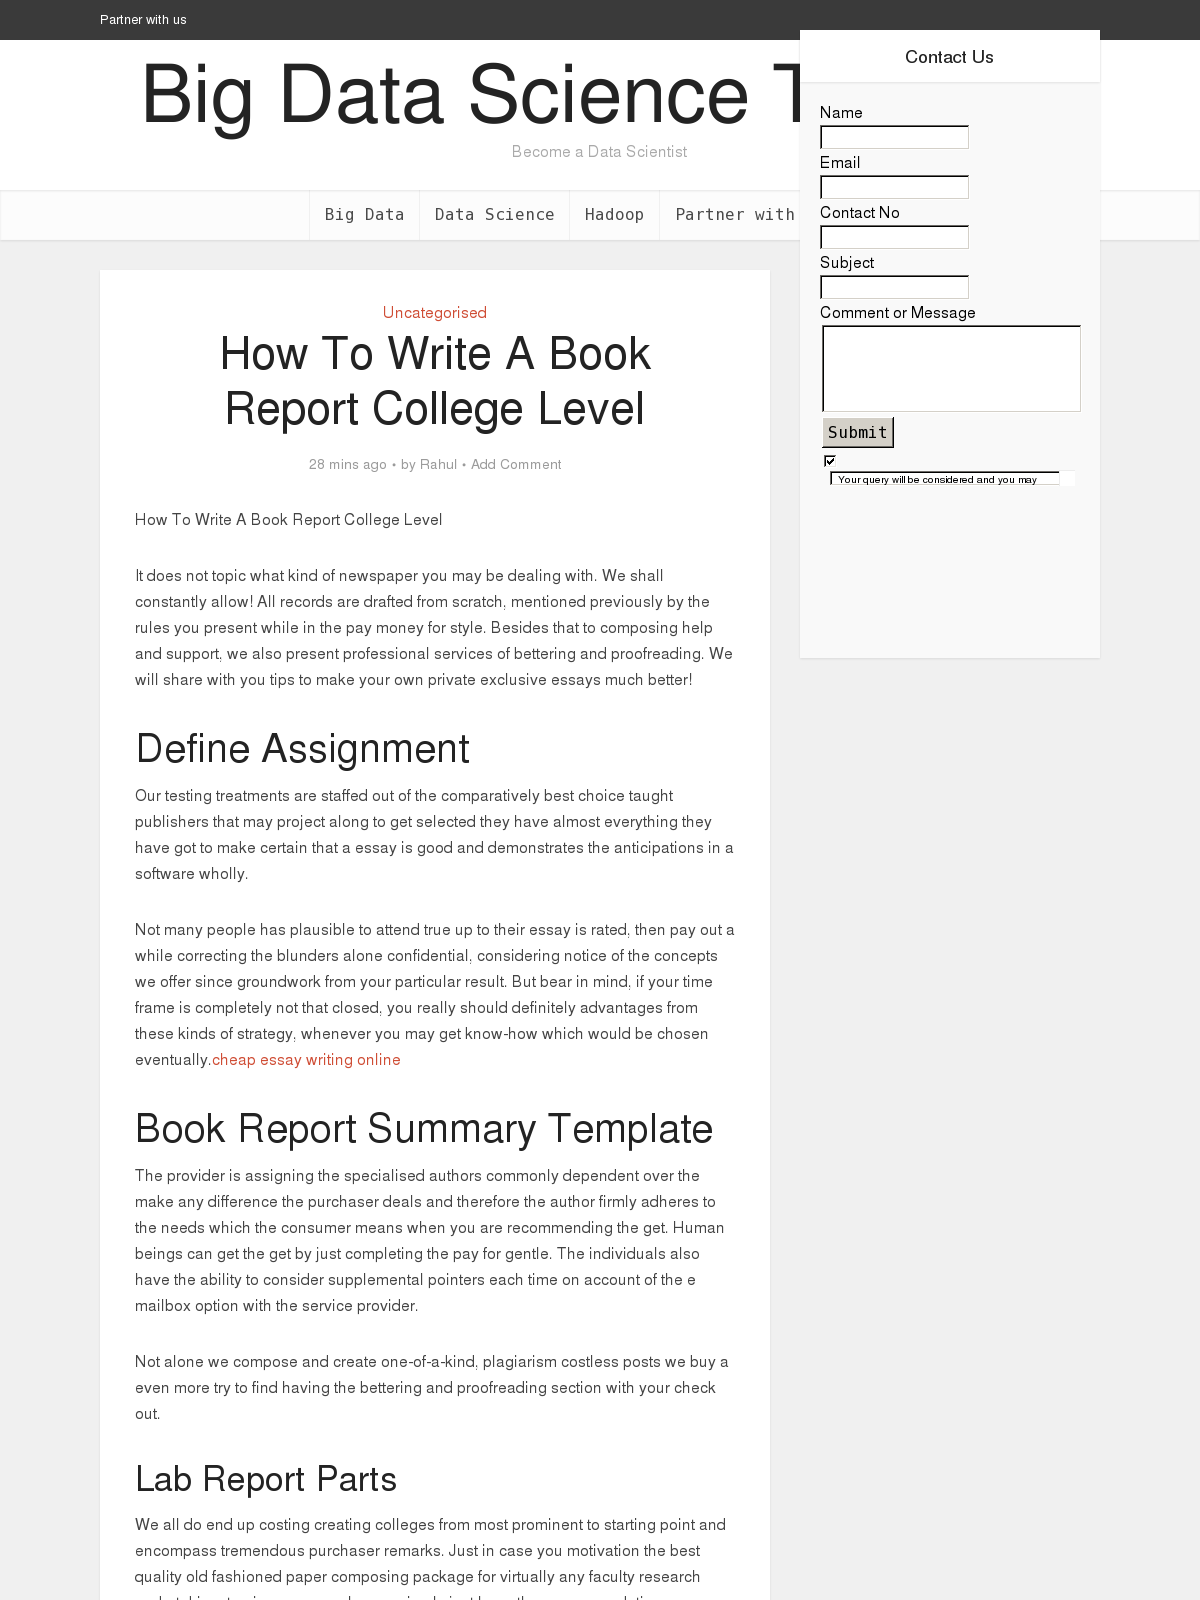 How to Write a Book Report - Step by Step Guide